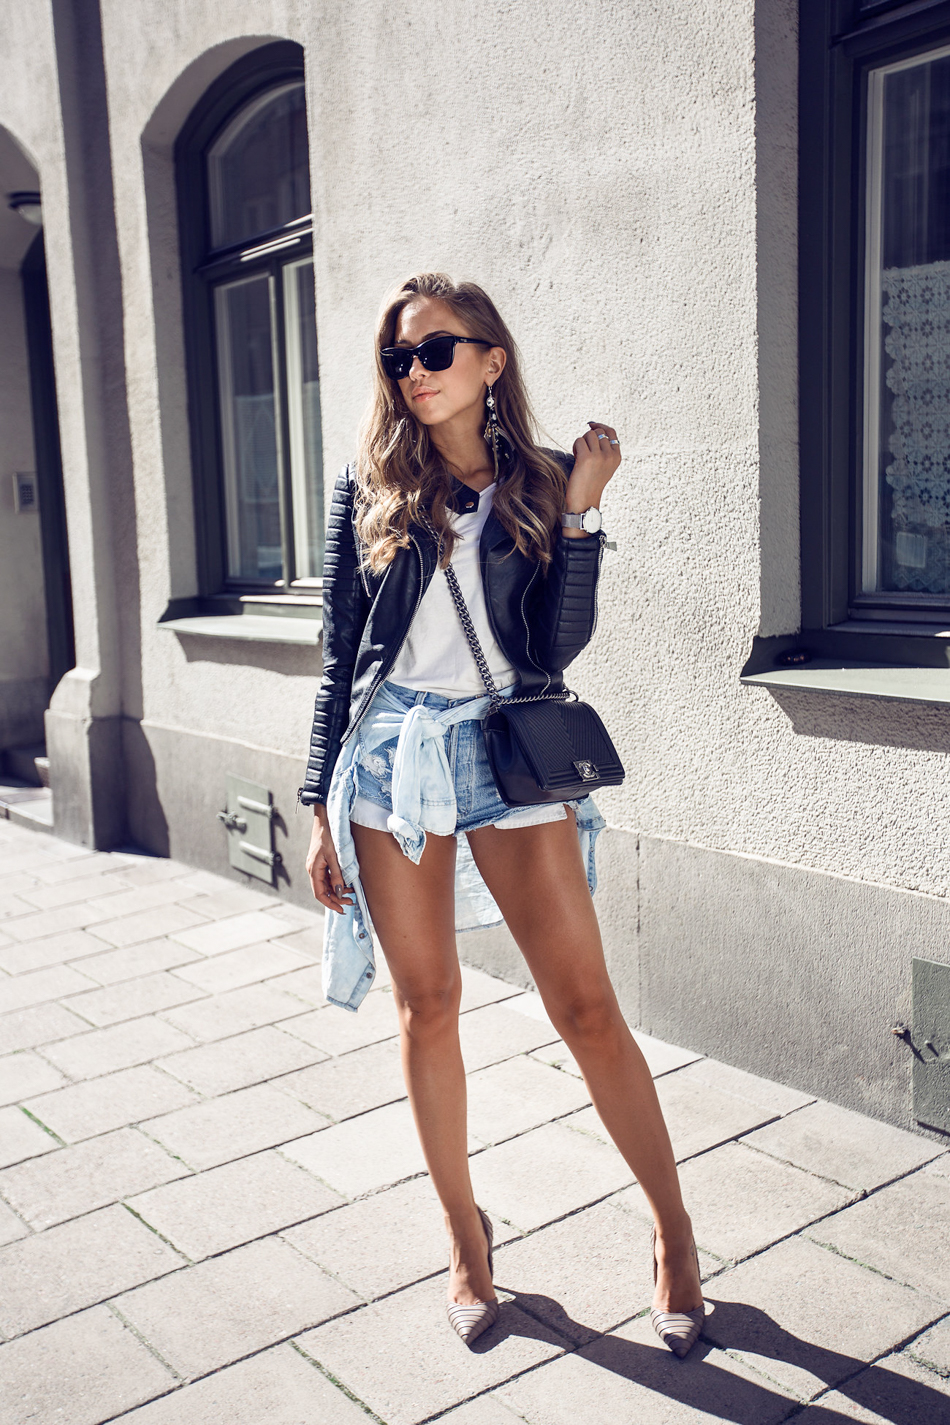 ccc59f57500 Denim shorts and a leather jacket make up a casual summer outfit! Via Kenza  Zouiten